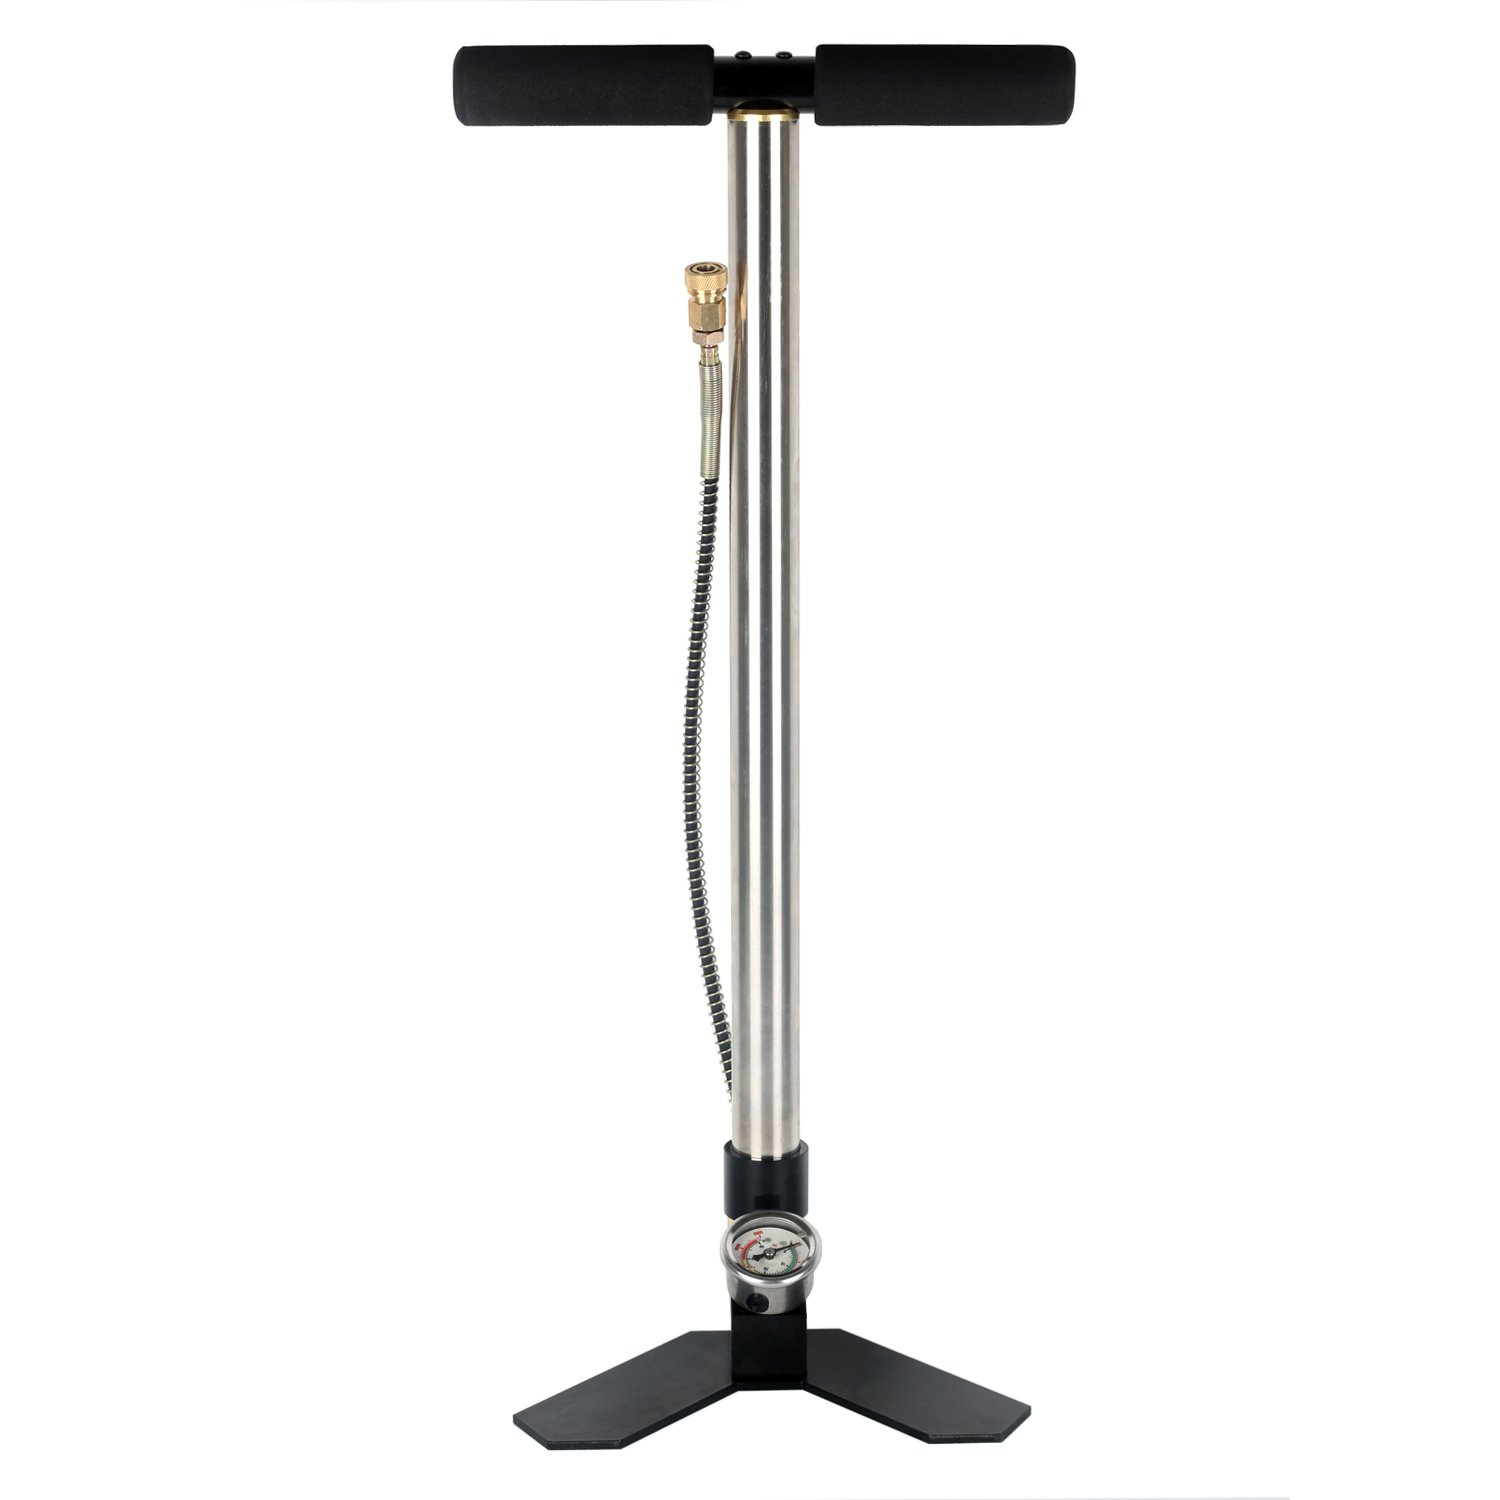 MAISI High pressure 4500psi pcp hand pump